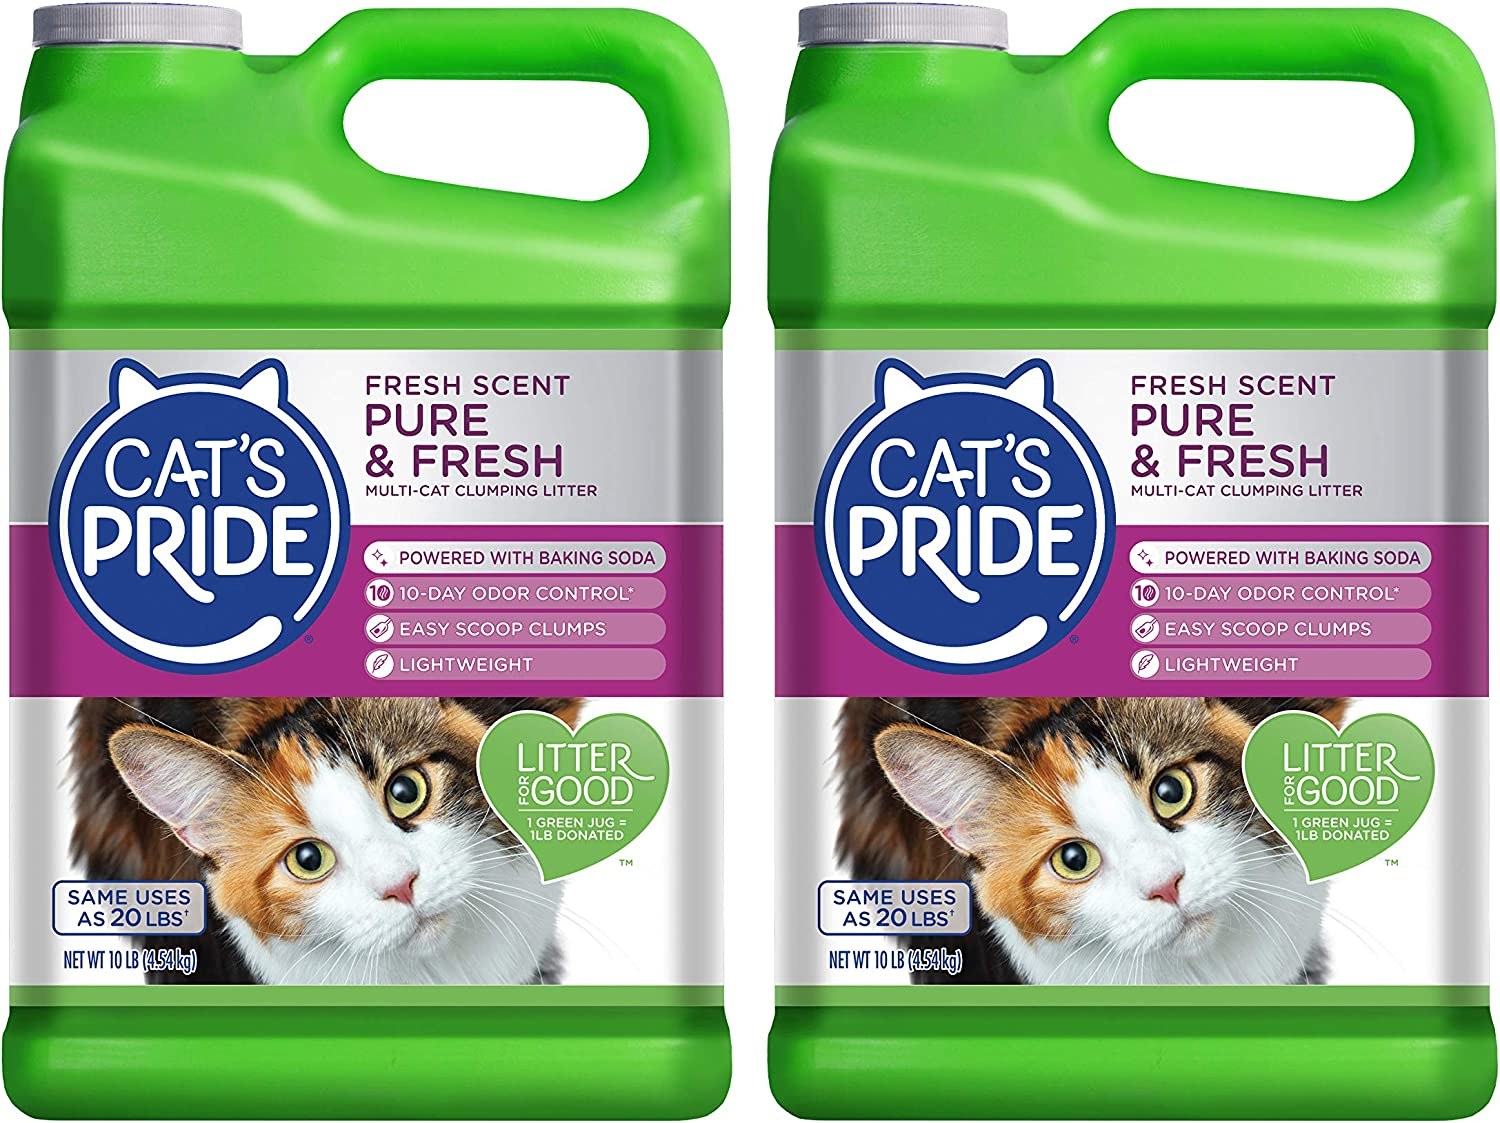 Cat's Pride Fresh Scent Elegant Multi-Cat Pure Clumping Litter Spring new work one after another